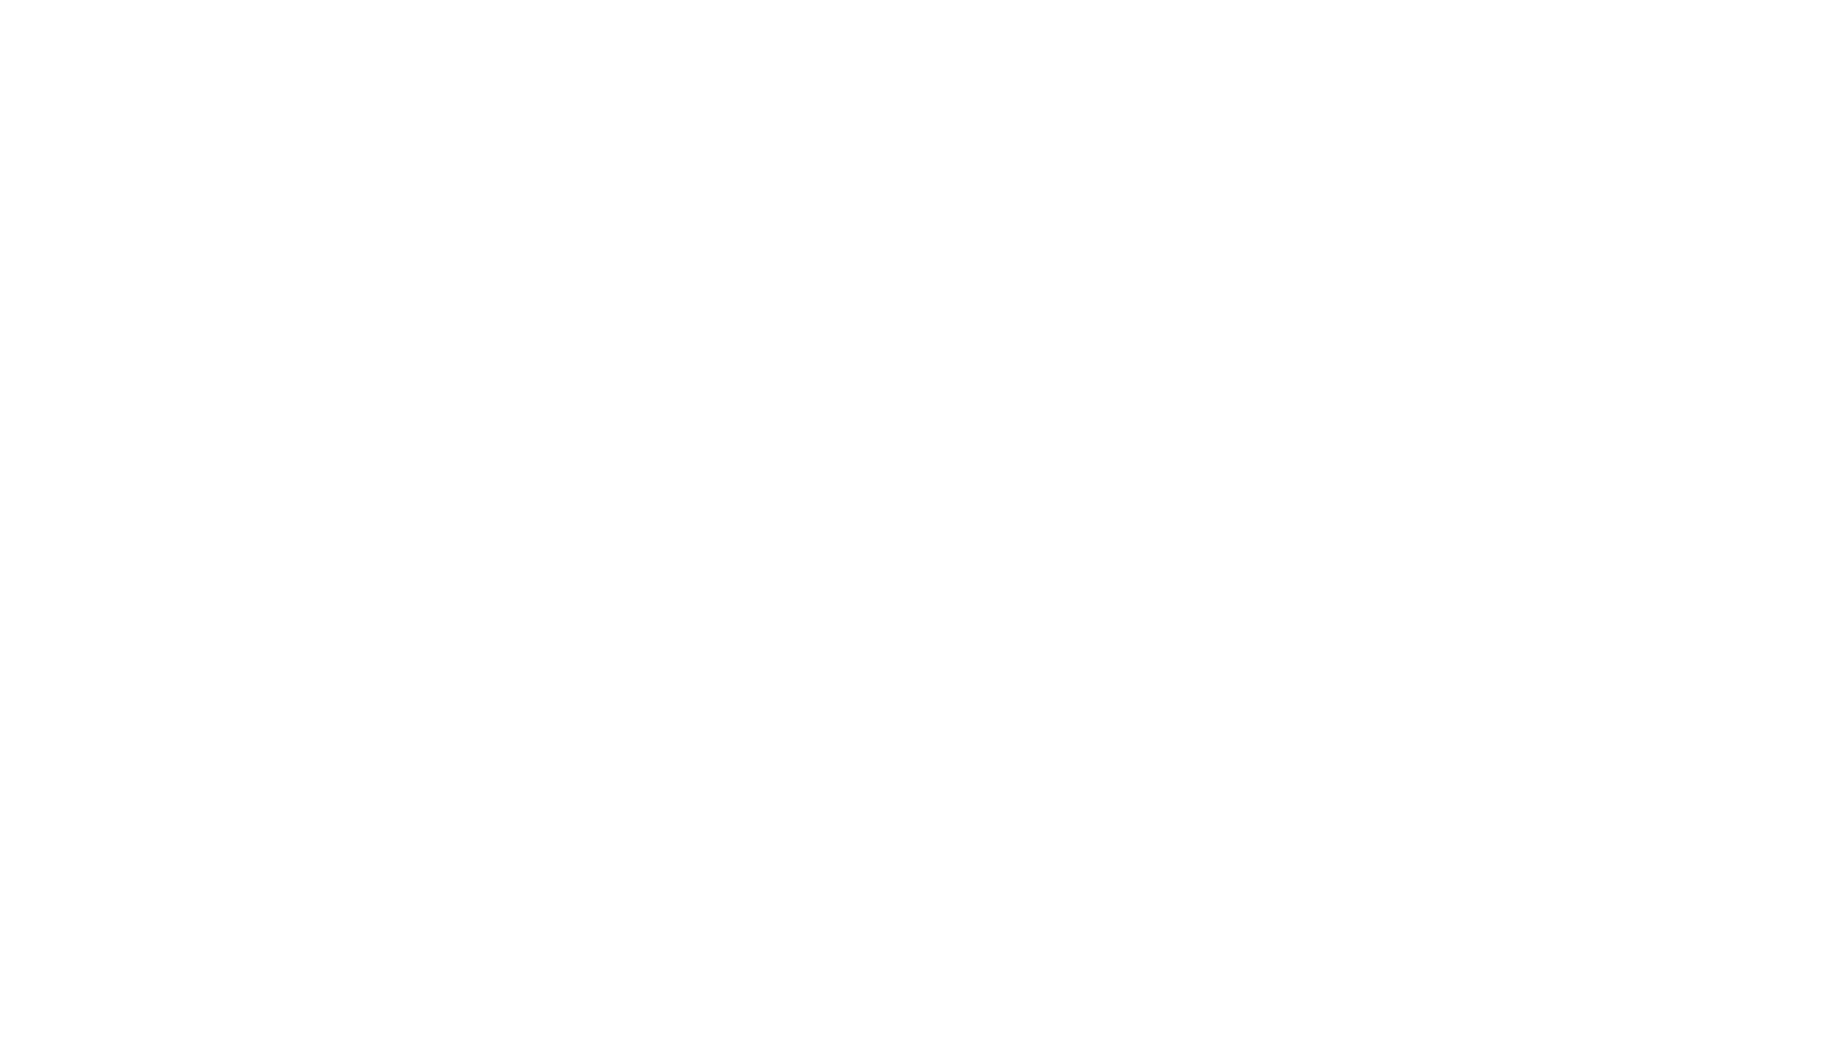 5G Will transform scotlands economy and communities